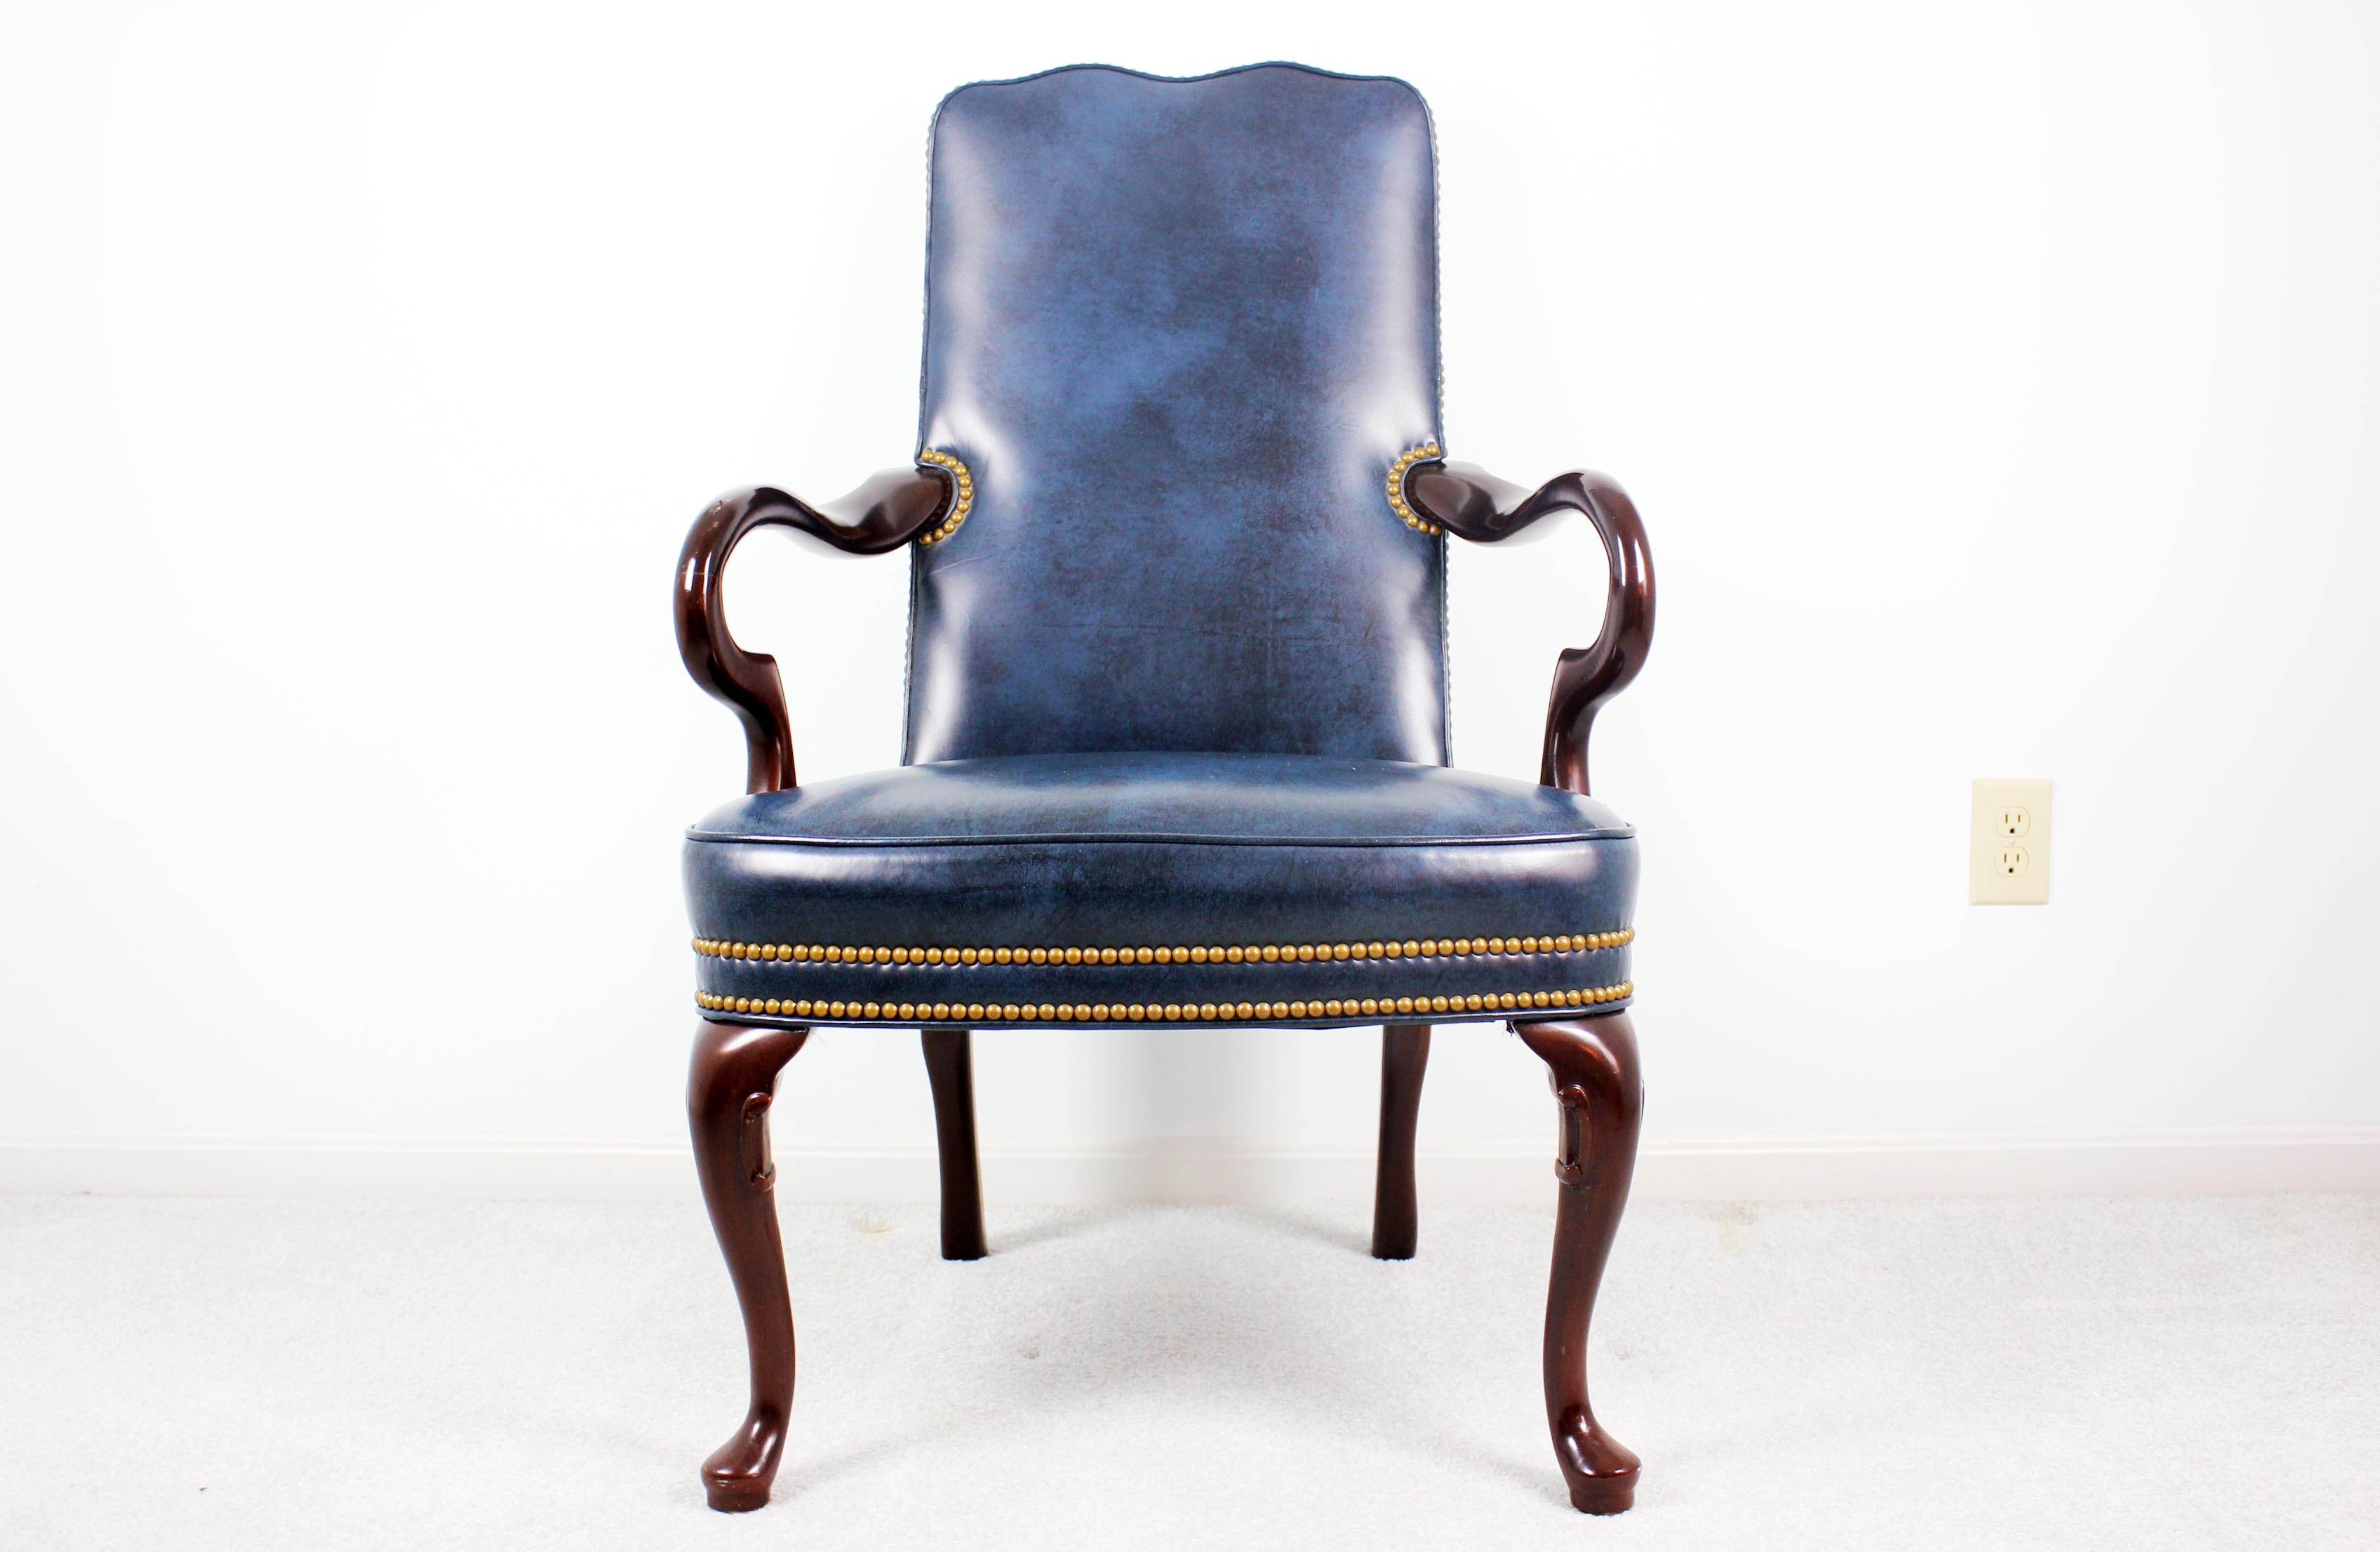 Charmant Hancock And Moore Leather Kensington Gooseneck Chair ...